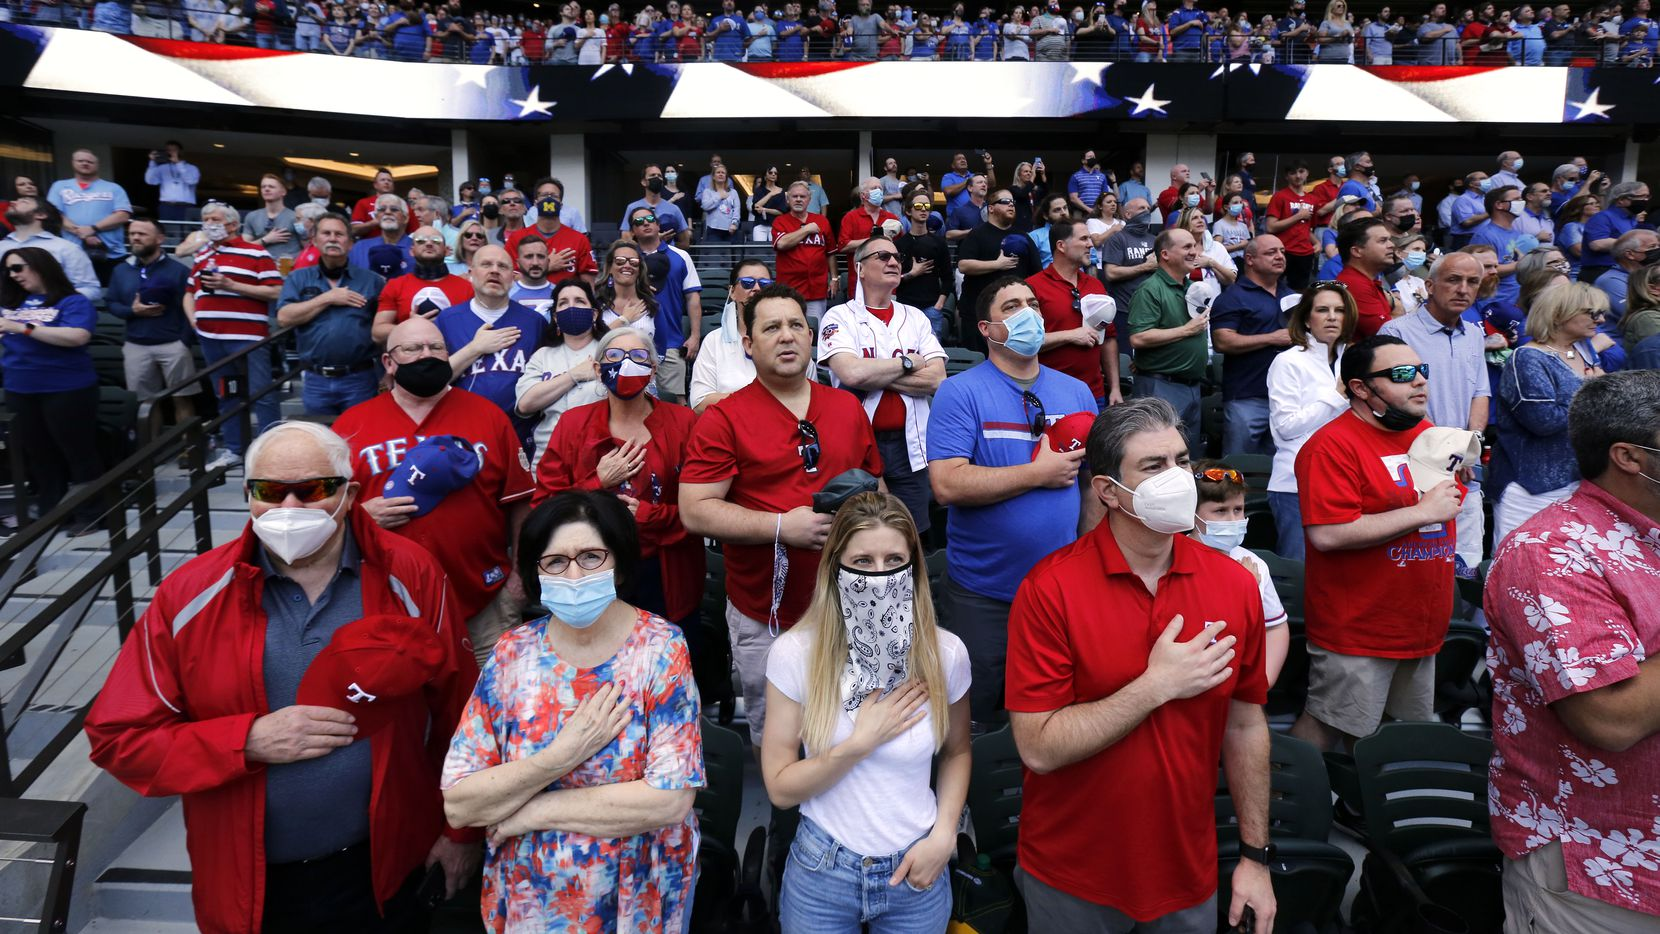 Texas Rangers fans (from left) Fred Aurbach, his girlfriend Leslie Lehman, his daughter-in-law Melissa Aurbach and son Wilson Aurbach and the rest of the nearly sold-out opening day crowd stand for the National anthem at Globe Life Field in Arlington, Monday, April 5, 2021. The Rangers were facing the Toronto Blue Jays in the home opener.